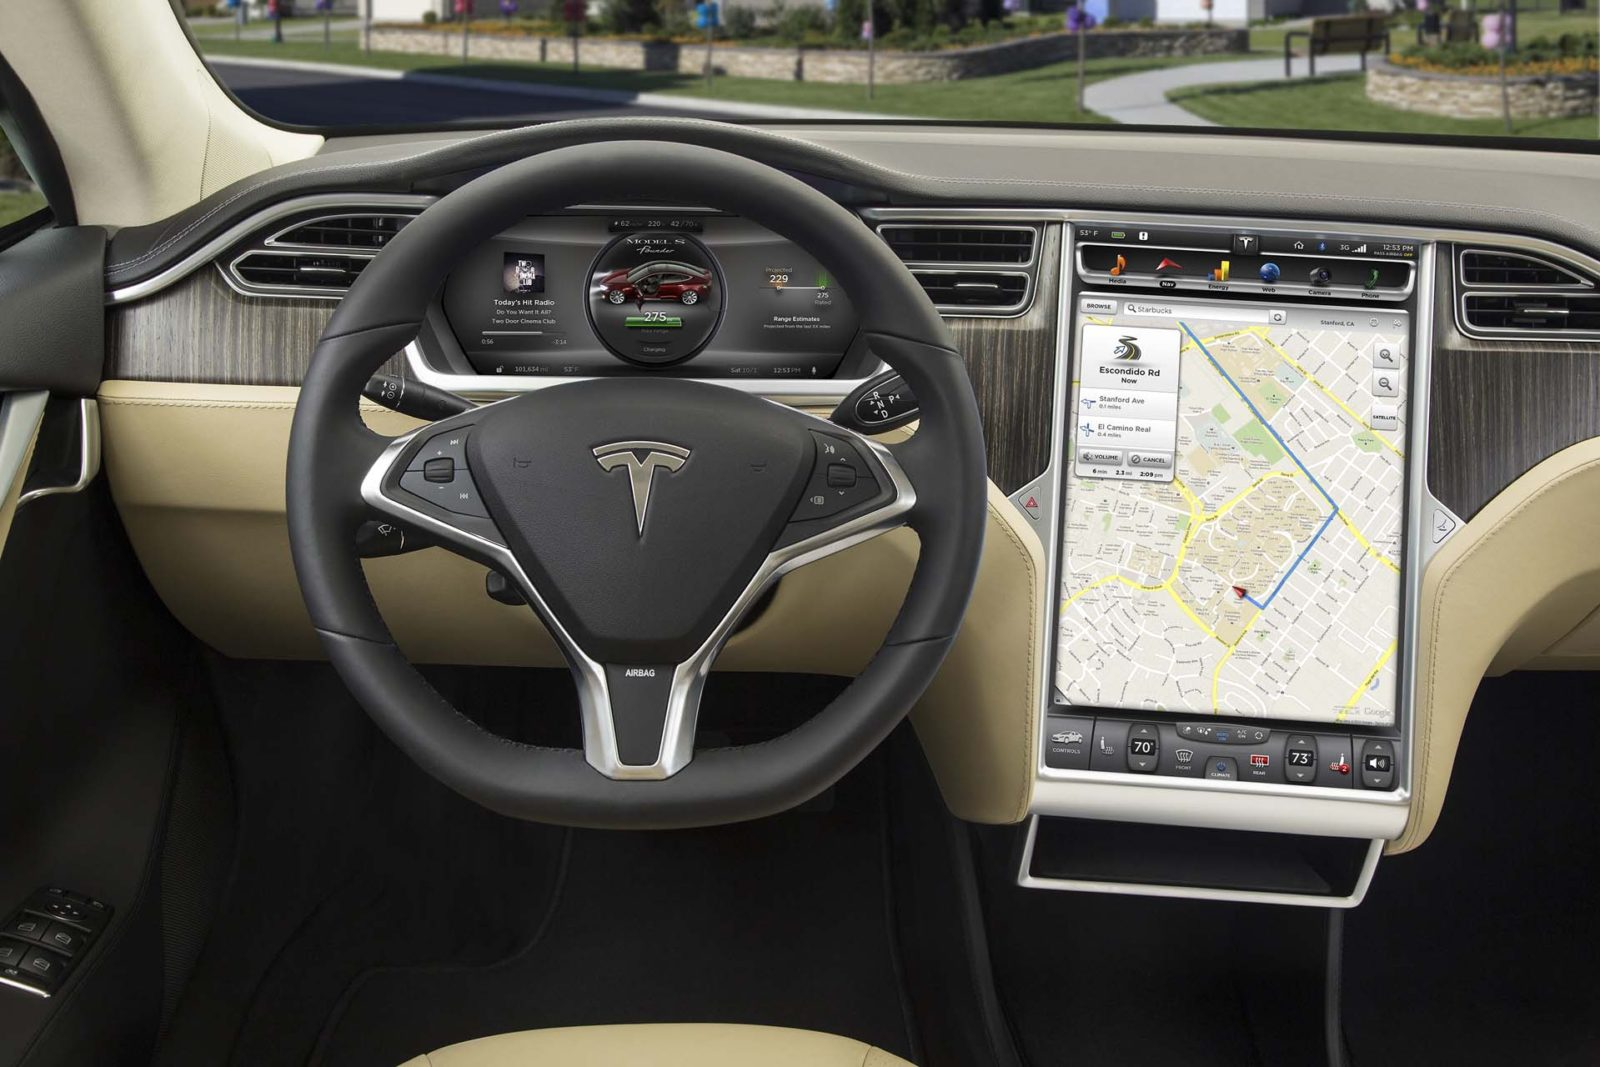 tesla-capitulates-in-recall-of-model-x,-model-s-for-touchscreen-failure